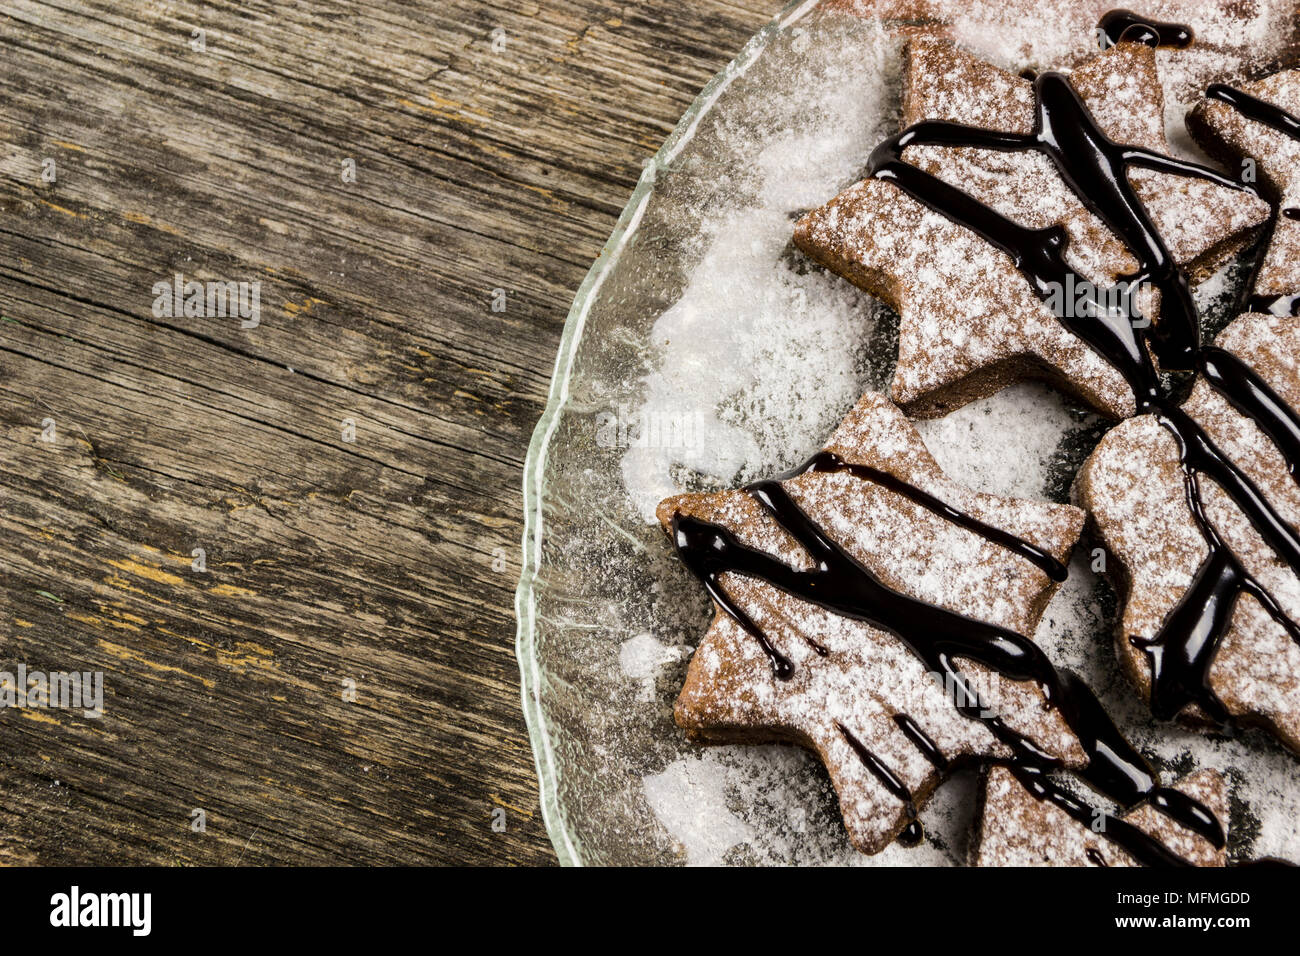 Ginger biscuits with chocolate cream on a wooden background - Stock Image